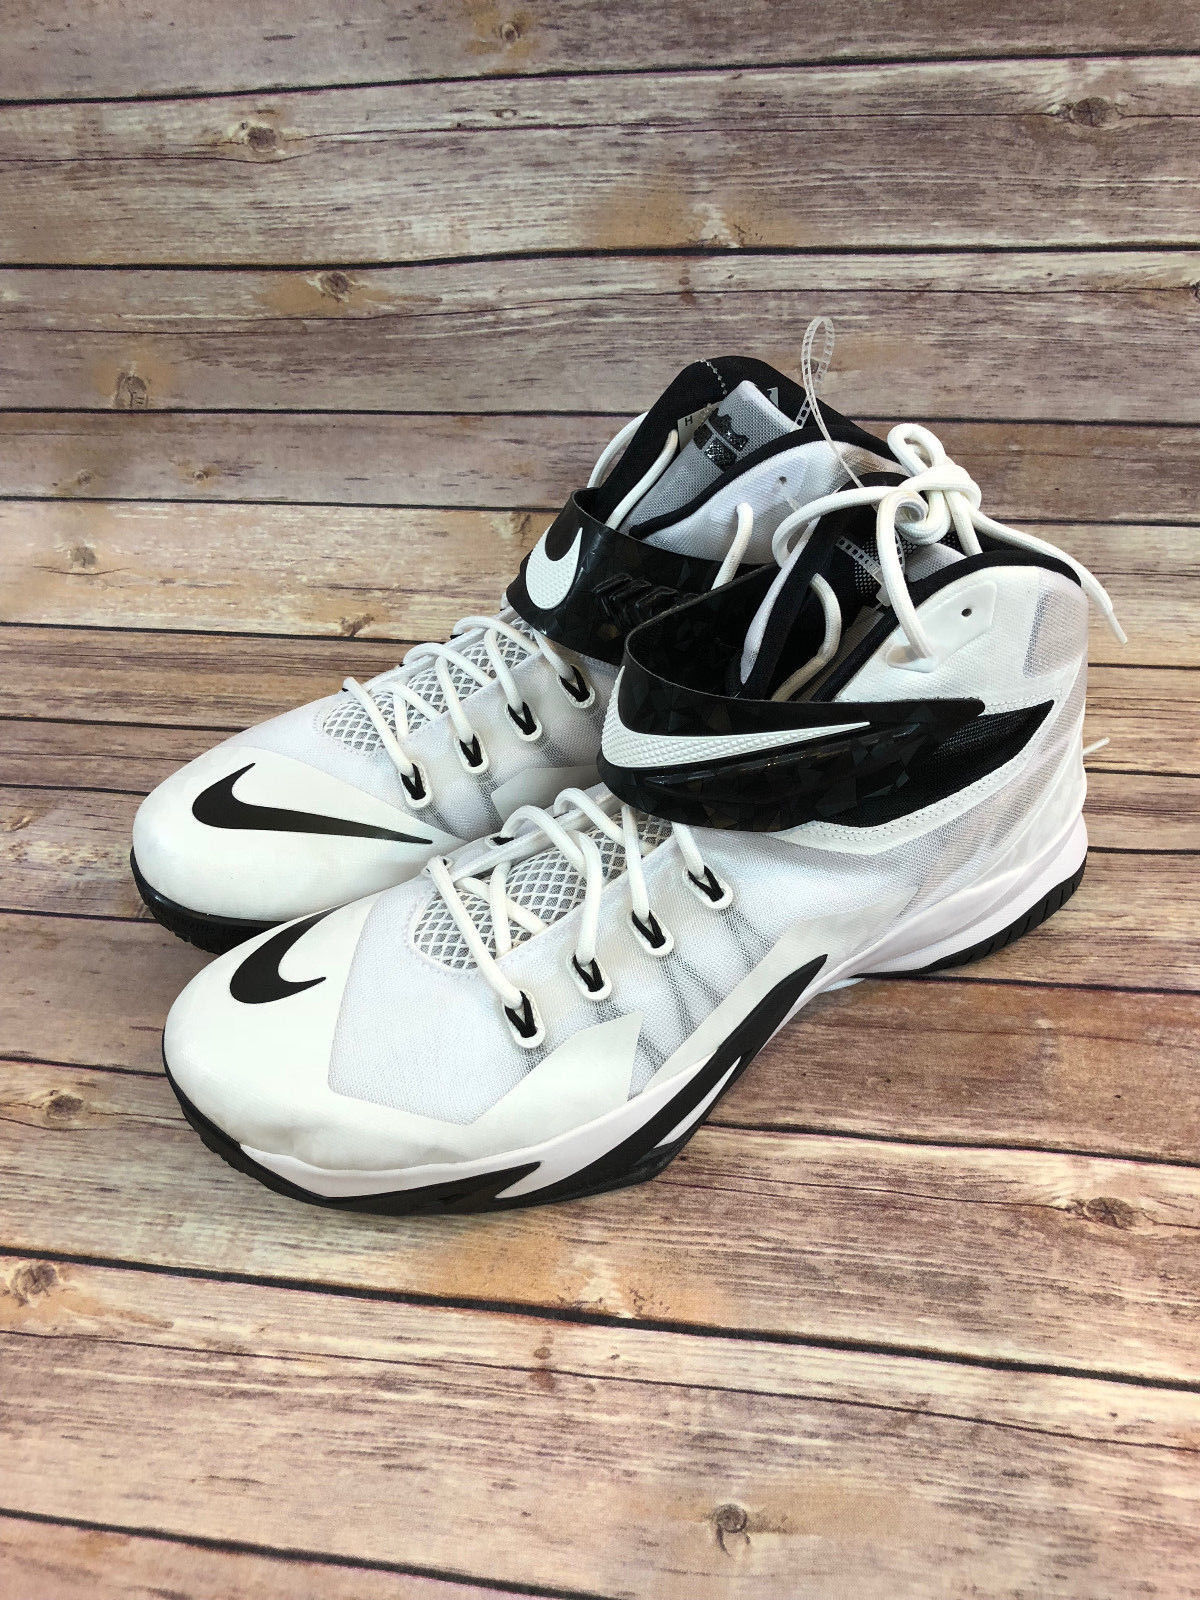 0fa1c9334 Nike 653648-100 Lebron Zoom Soldier 8 White and 50 similar items